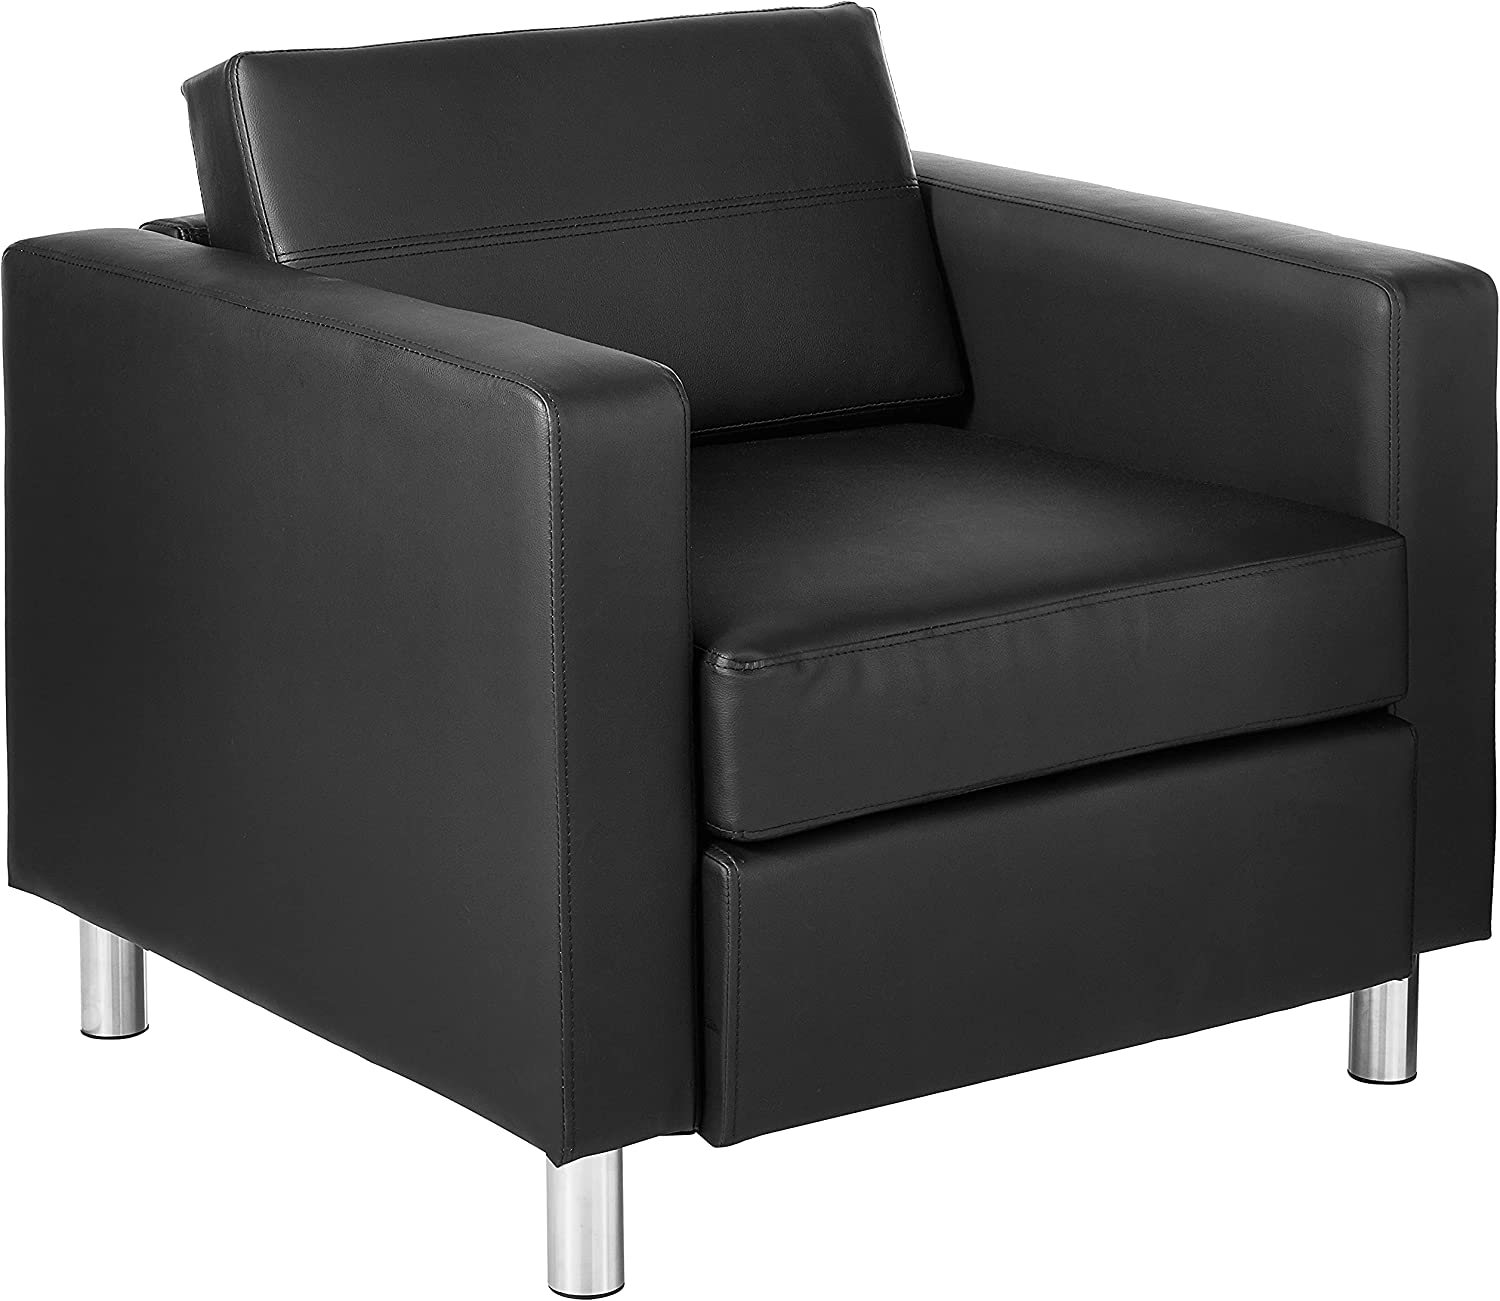 OSP Home trust Furnishings Max 78% OFF Pacific Arm Chair Black